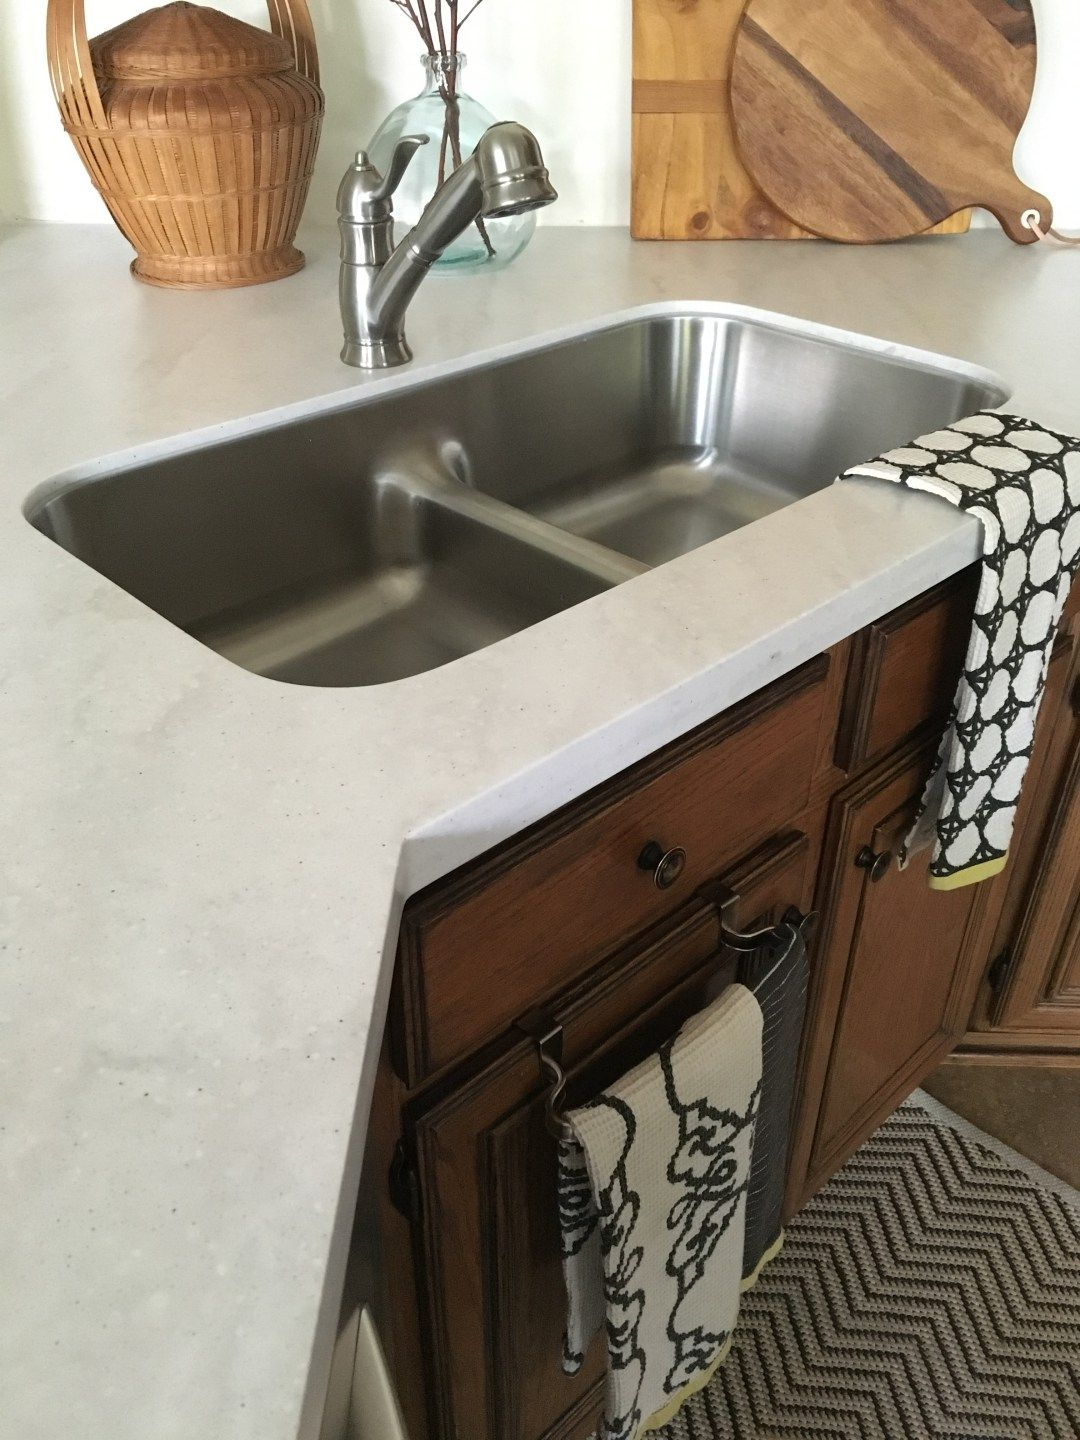 Allen Roth Solid Surface Countertop Review | Solid surface ...